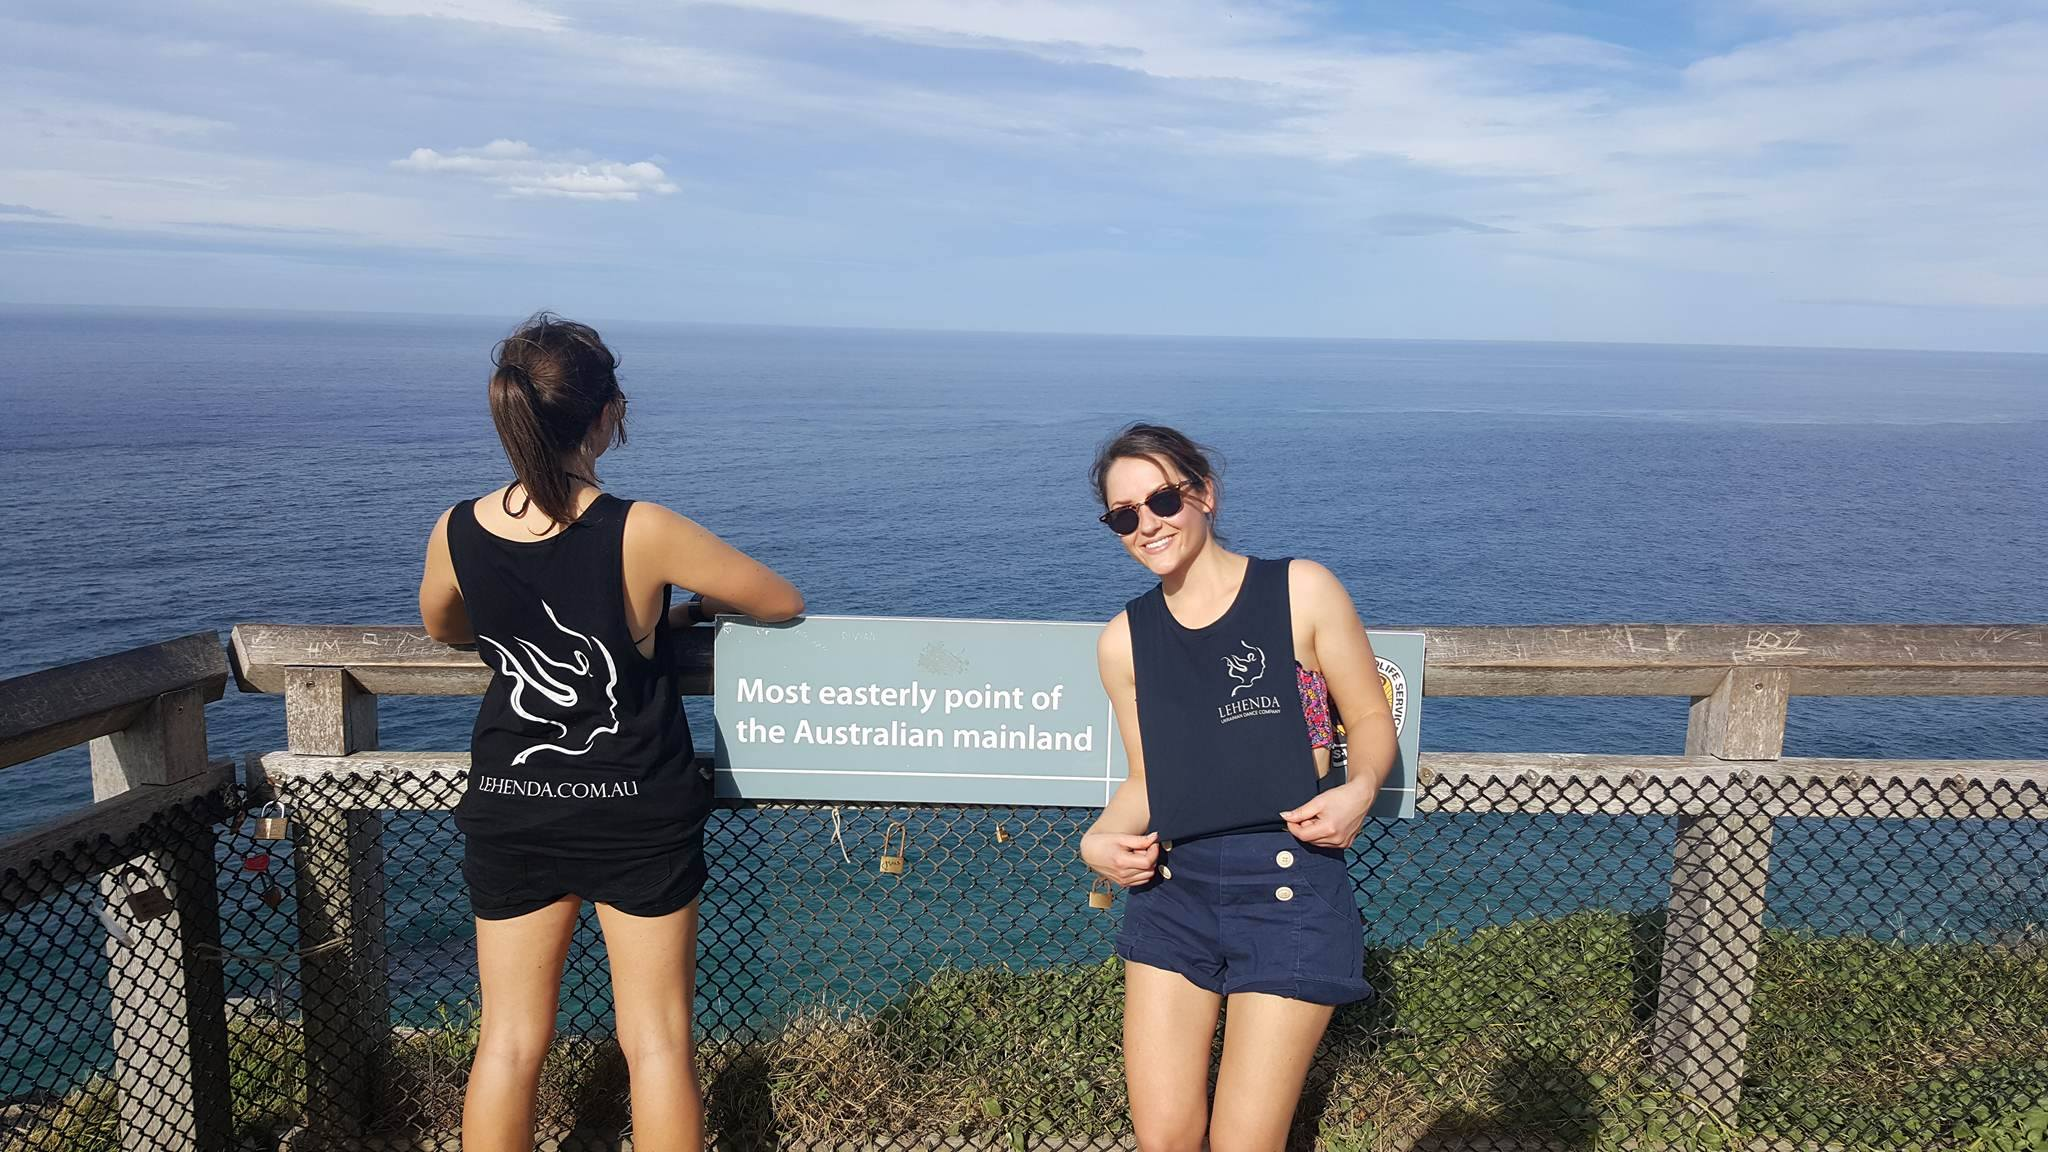 Lydia and Steph at the most easterly point of the Australian mainland!